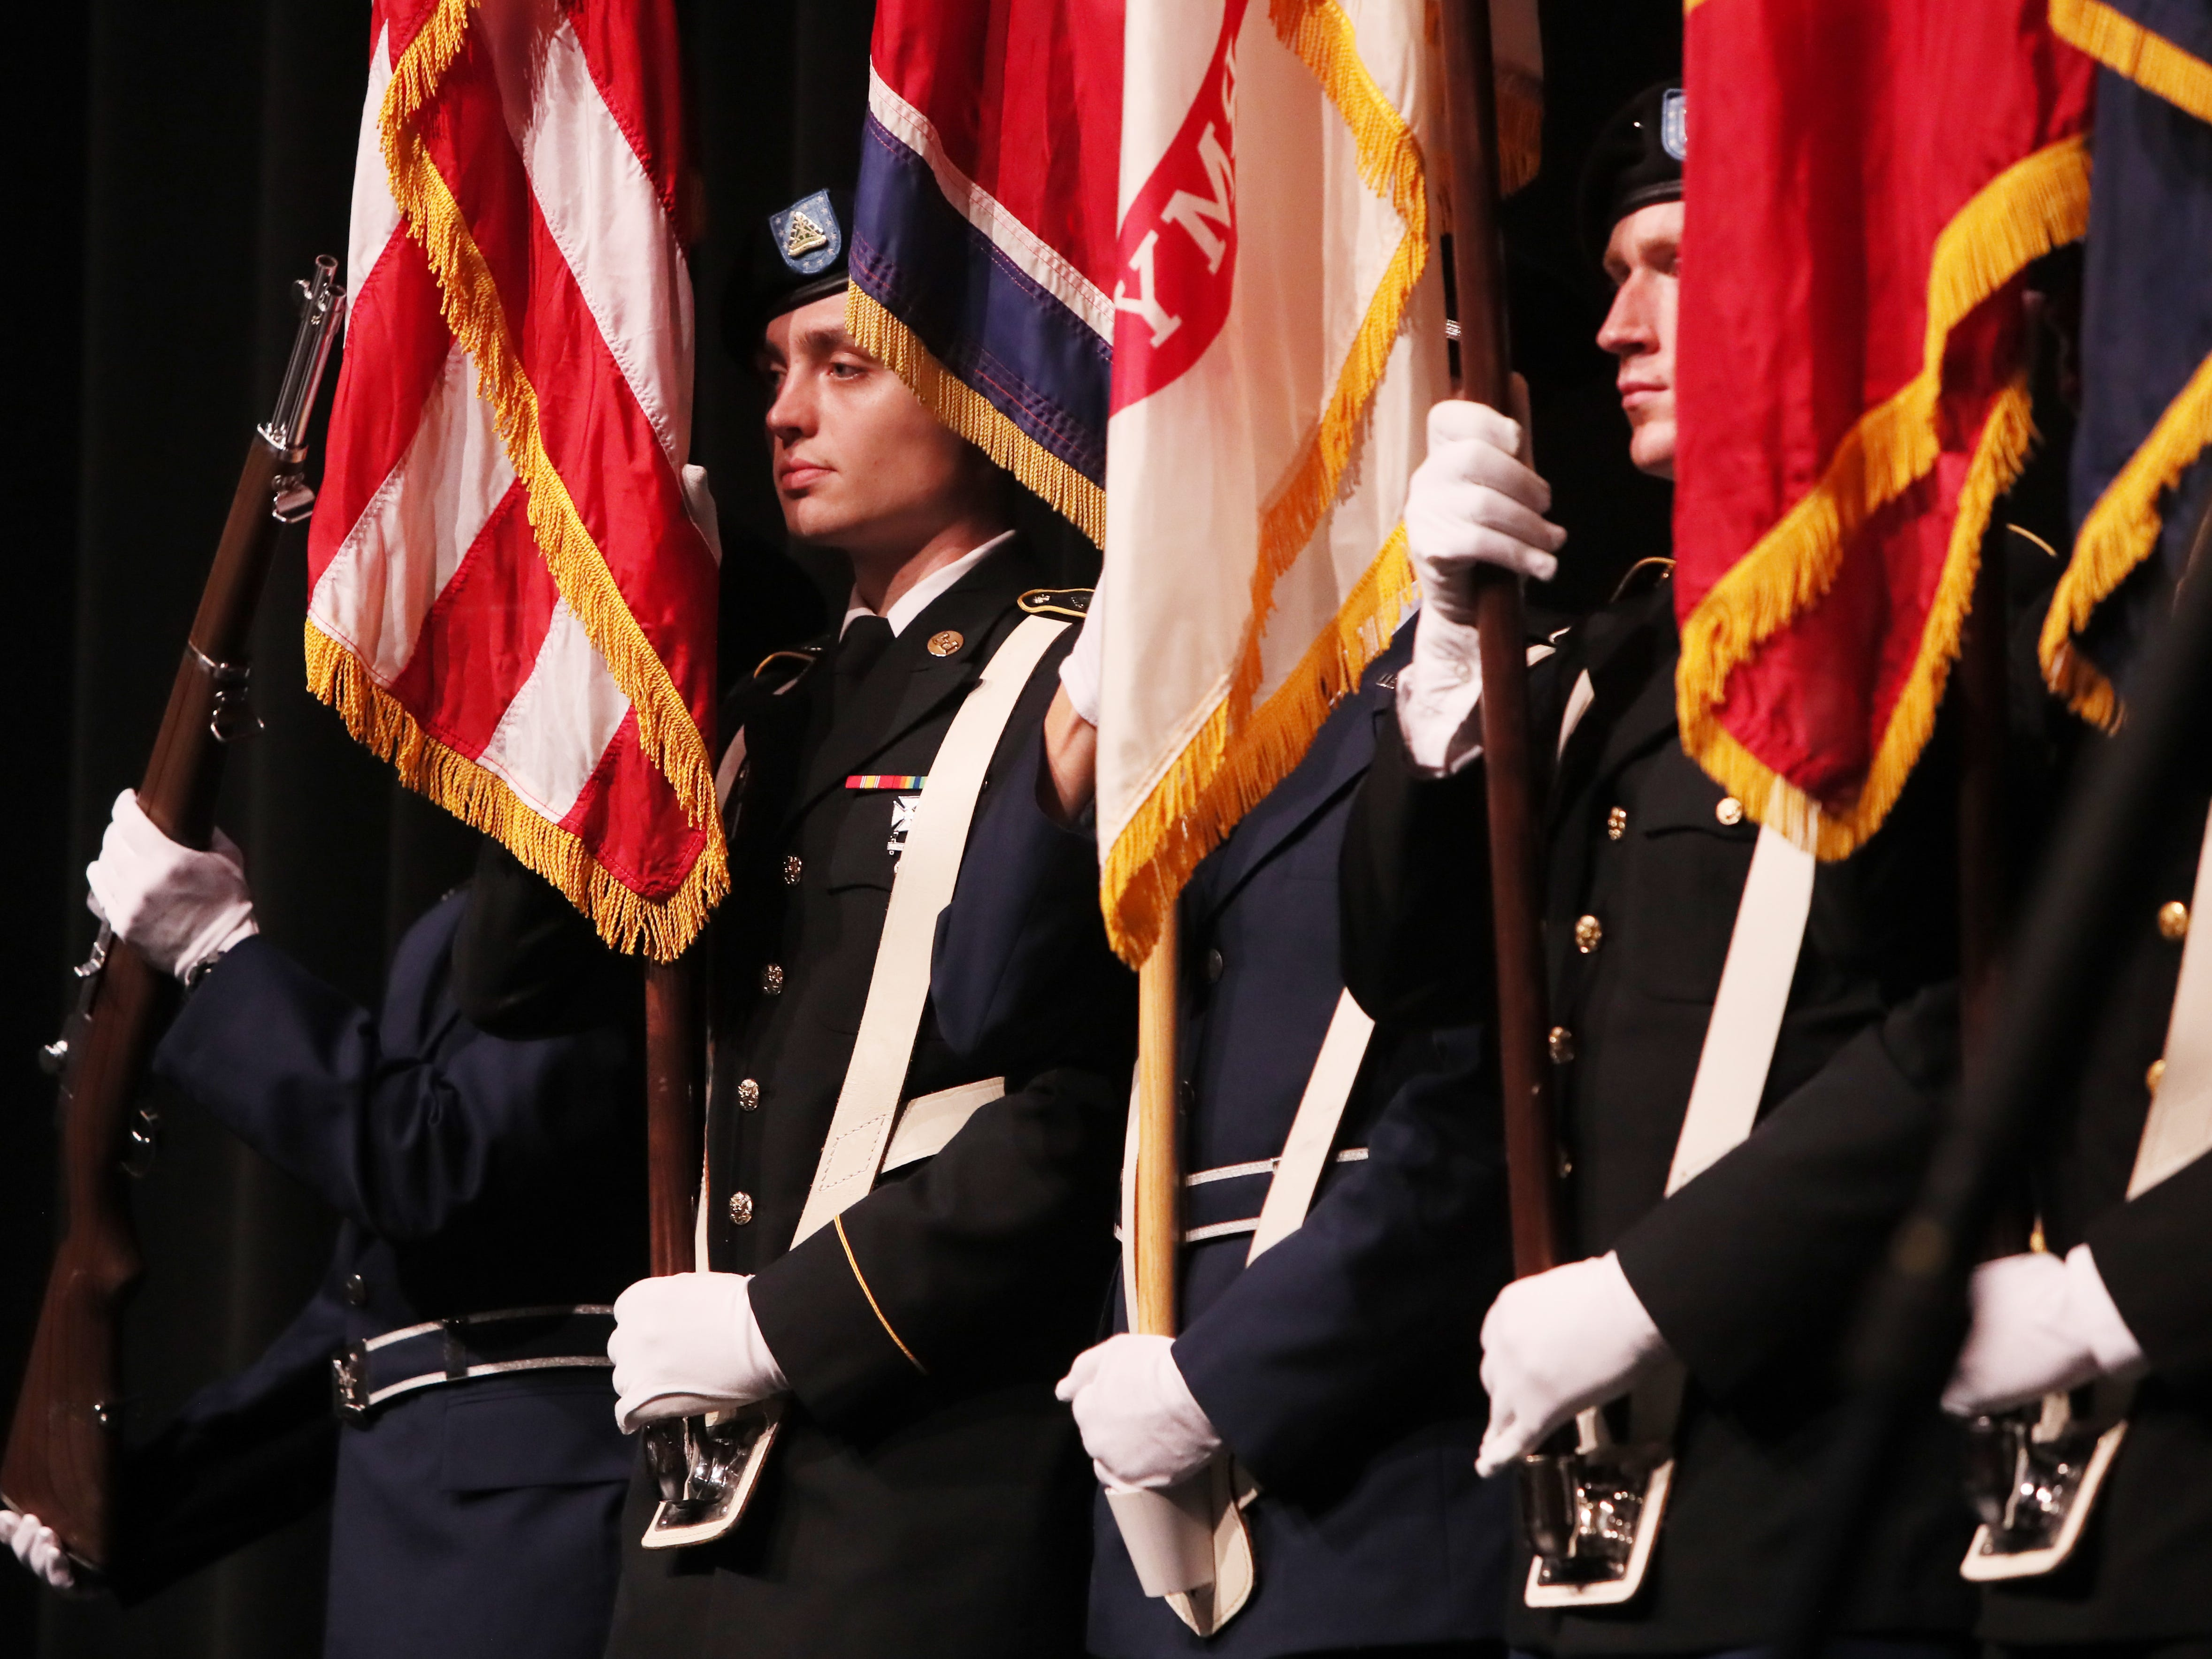 Cadets and midshipmen of the Army, Marines, Navy and Air Force ROTC programs at the University of Memphis present the colors before the start of the debate between Tennessee's gubernatorial candidates Democrat Karl Dean and Republican Bill Lee at the University of Memphis' Michael D. Rose Theater in Memphis, Tenn., on Tuesday, Oct. 2, 2018.